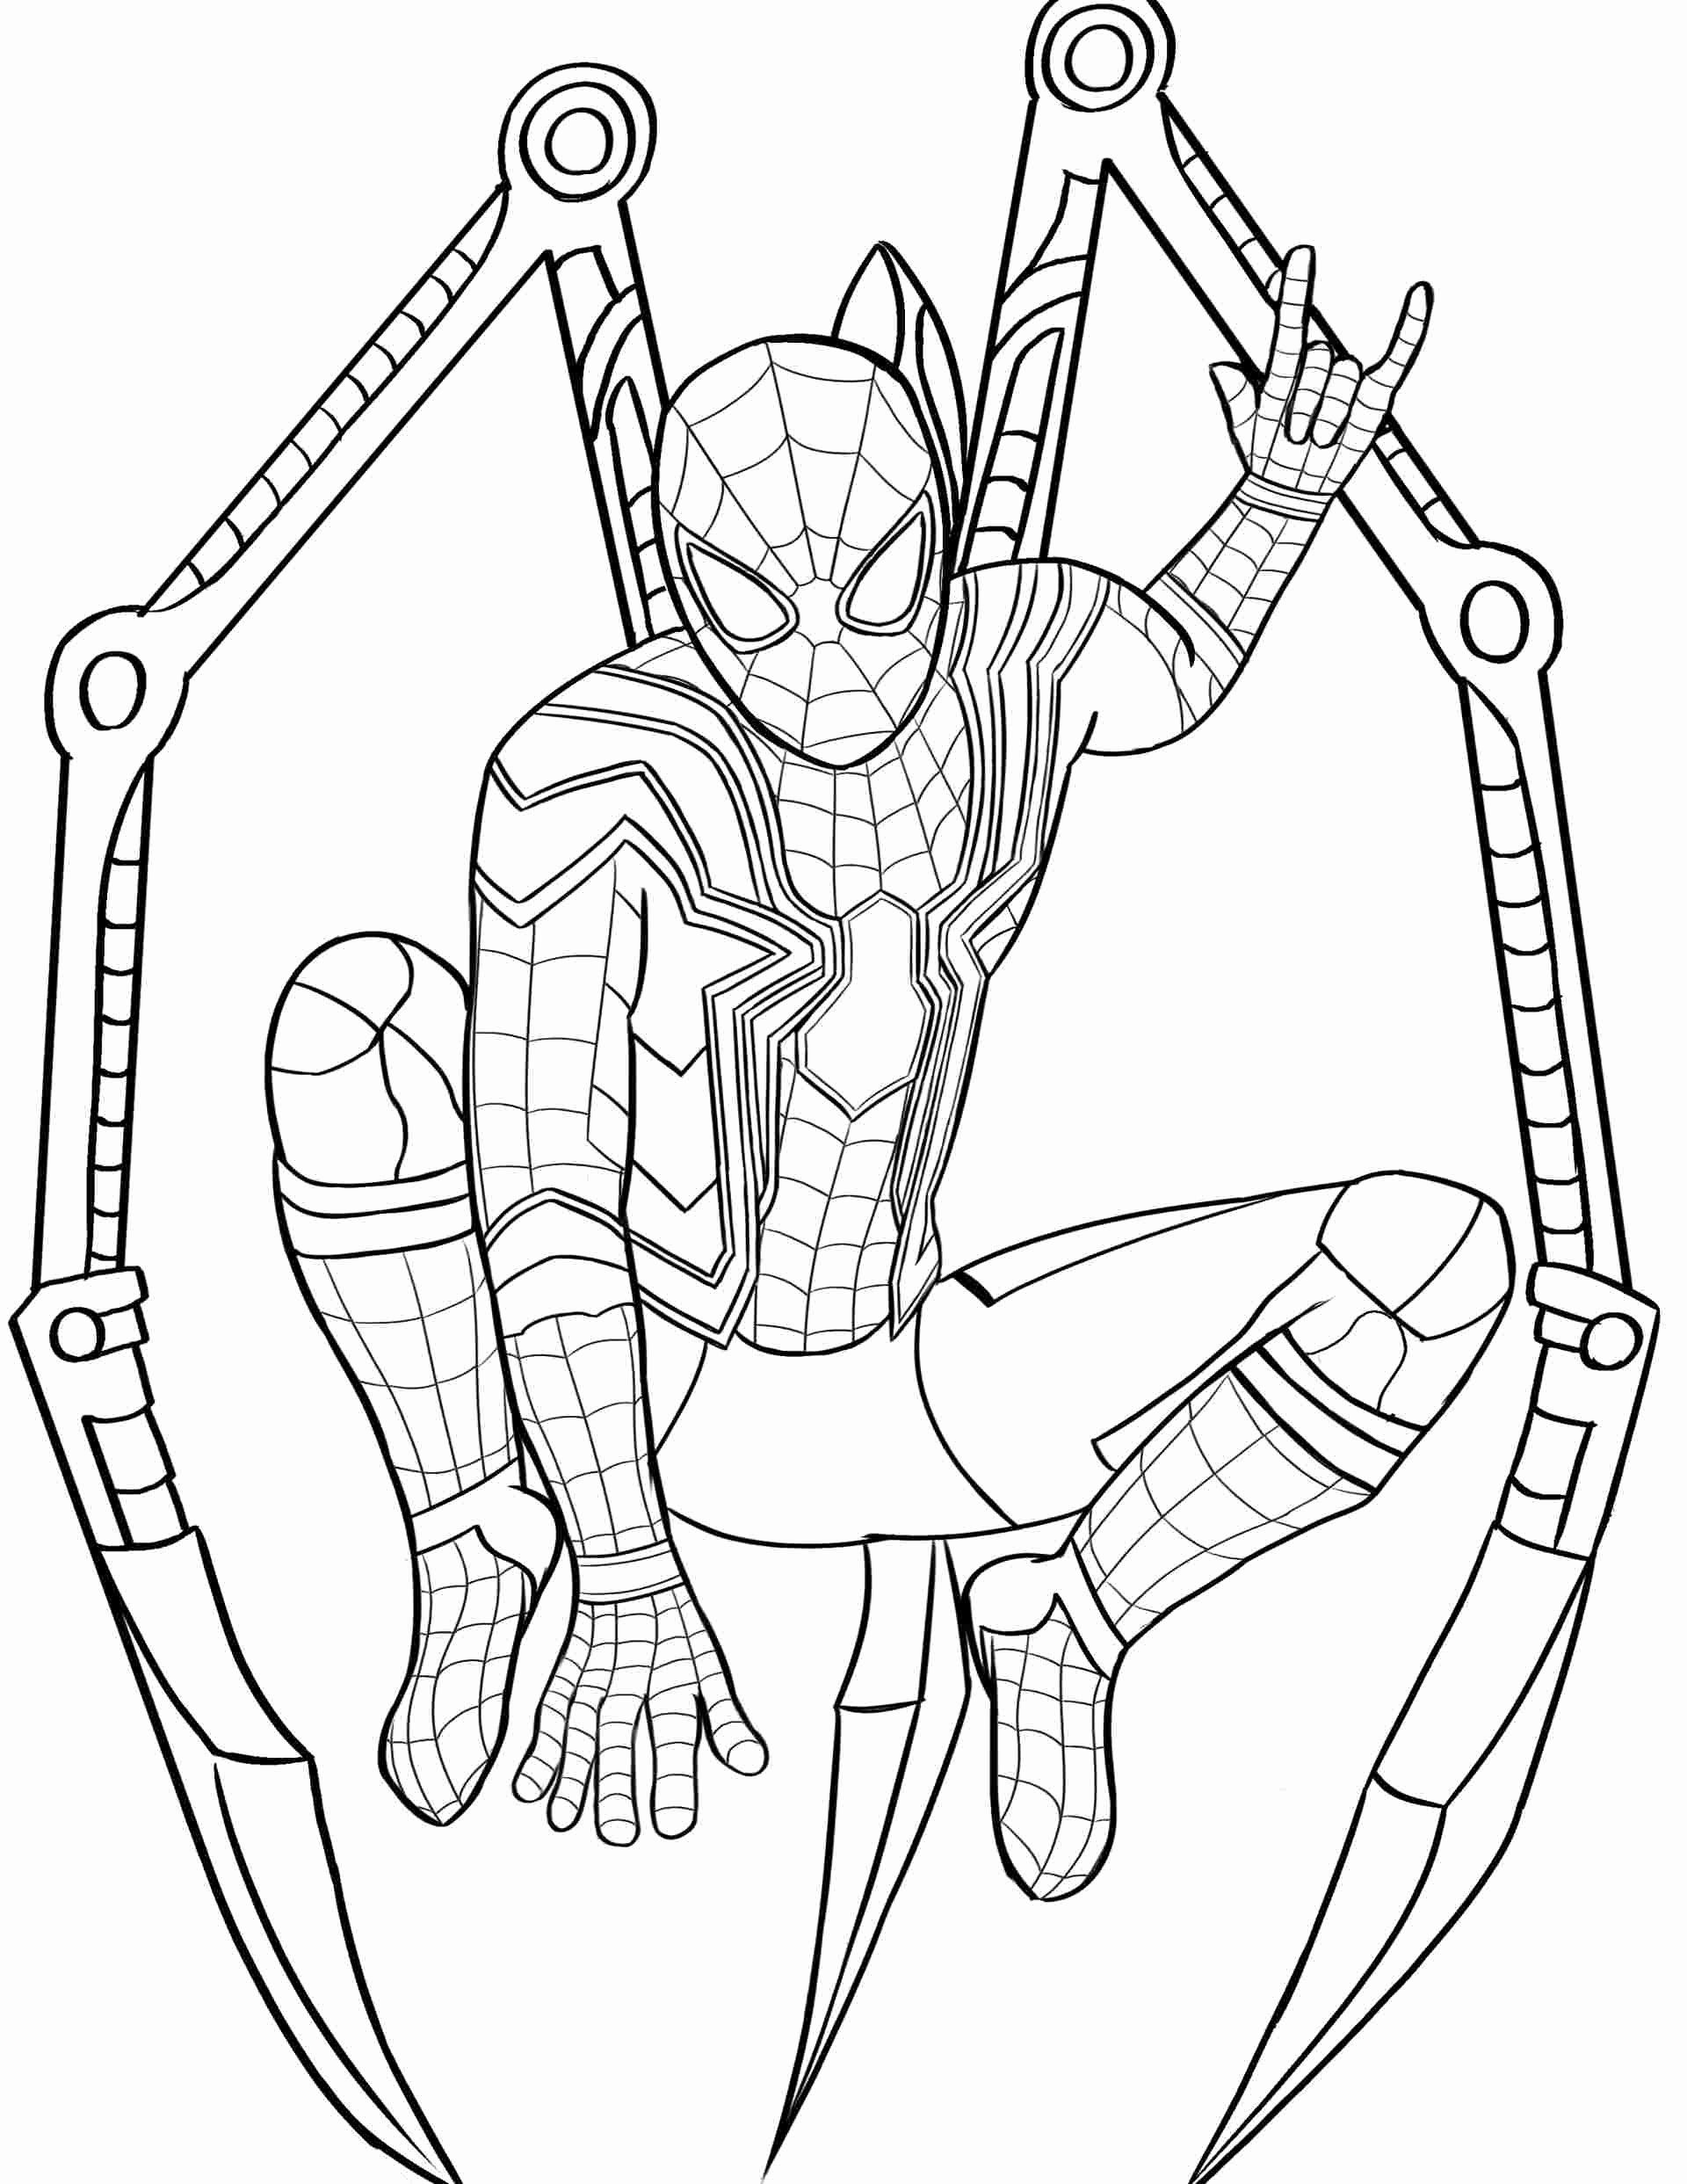 Miles Morales Coloring Page Unique Coloring Pages Spider ...